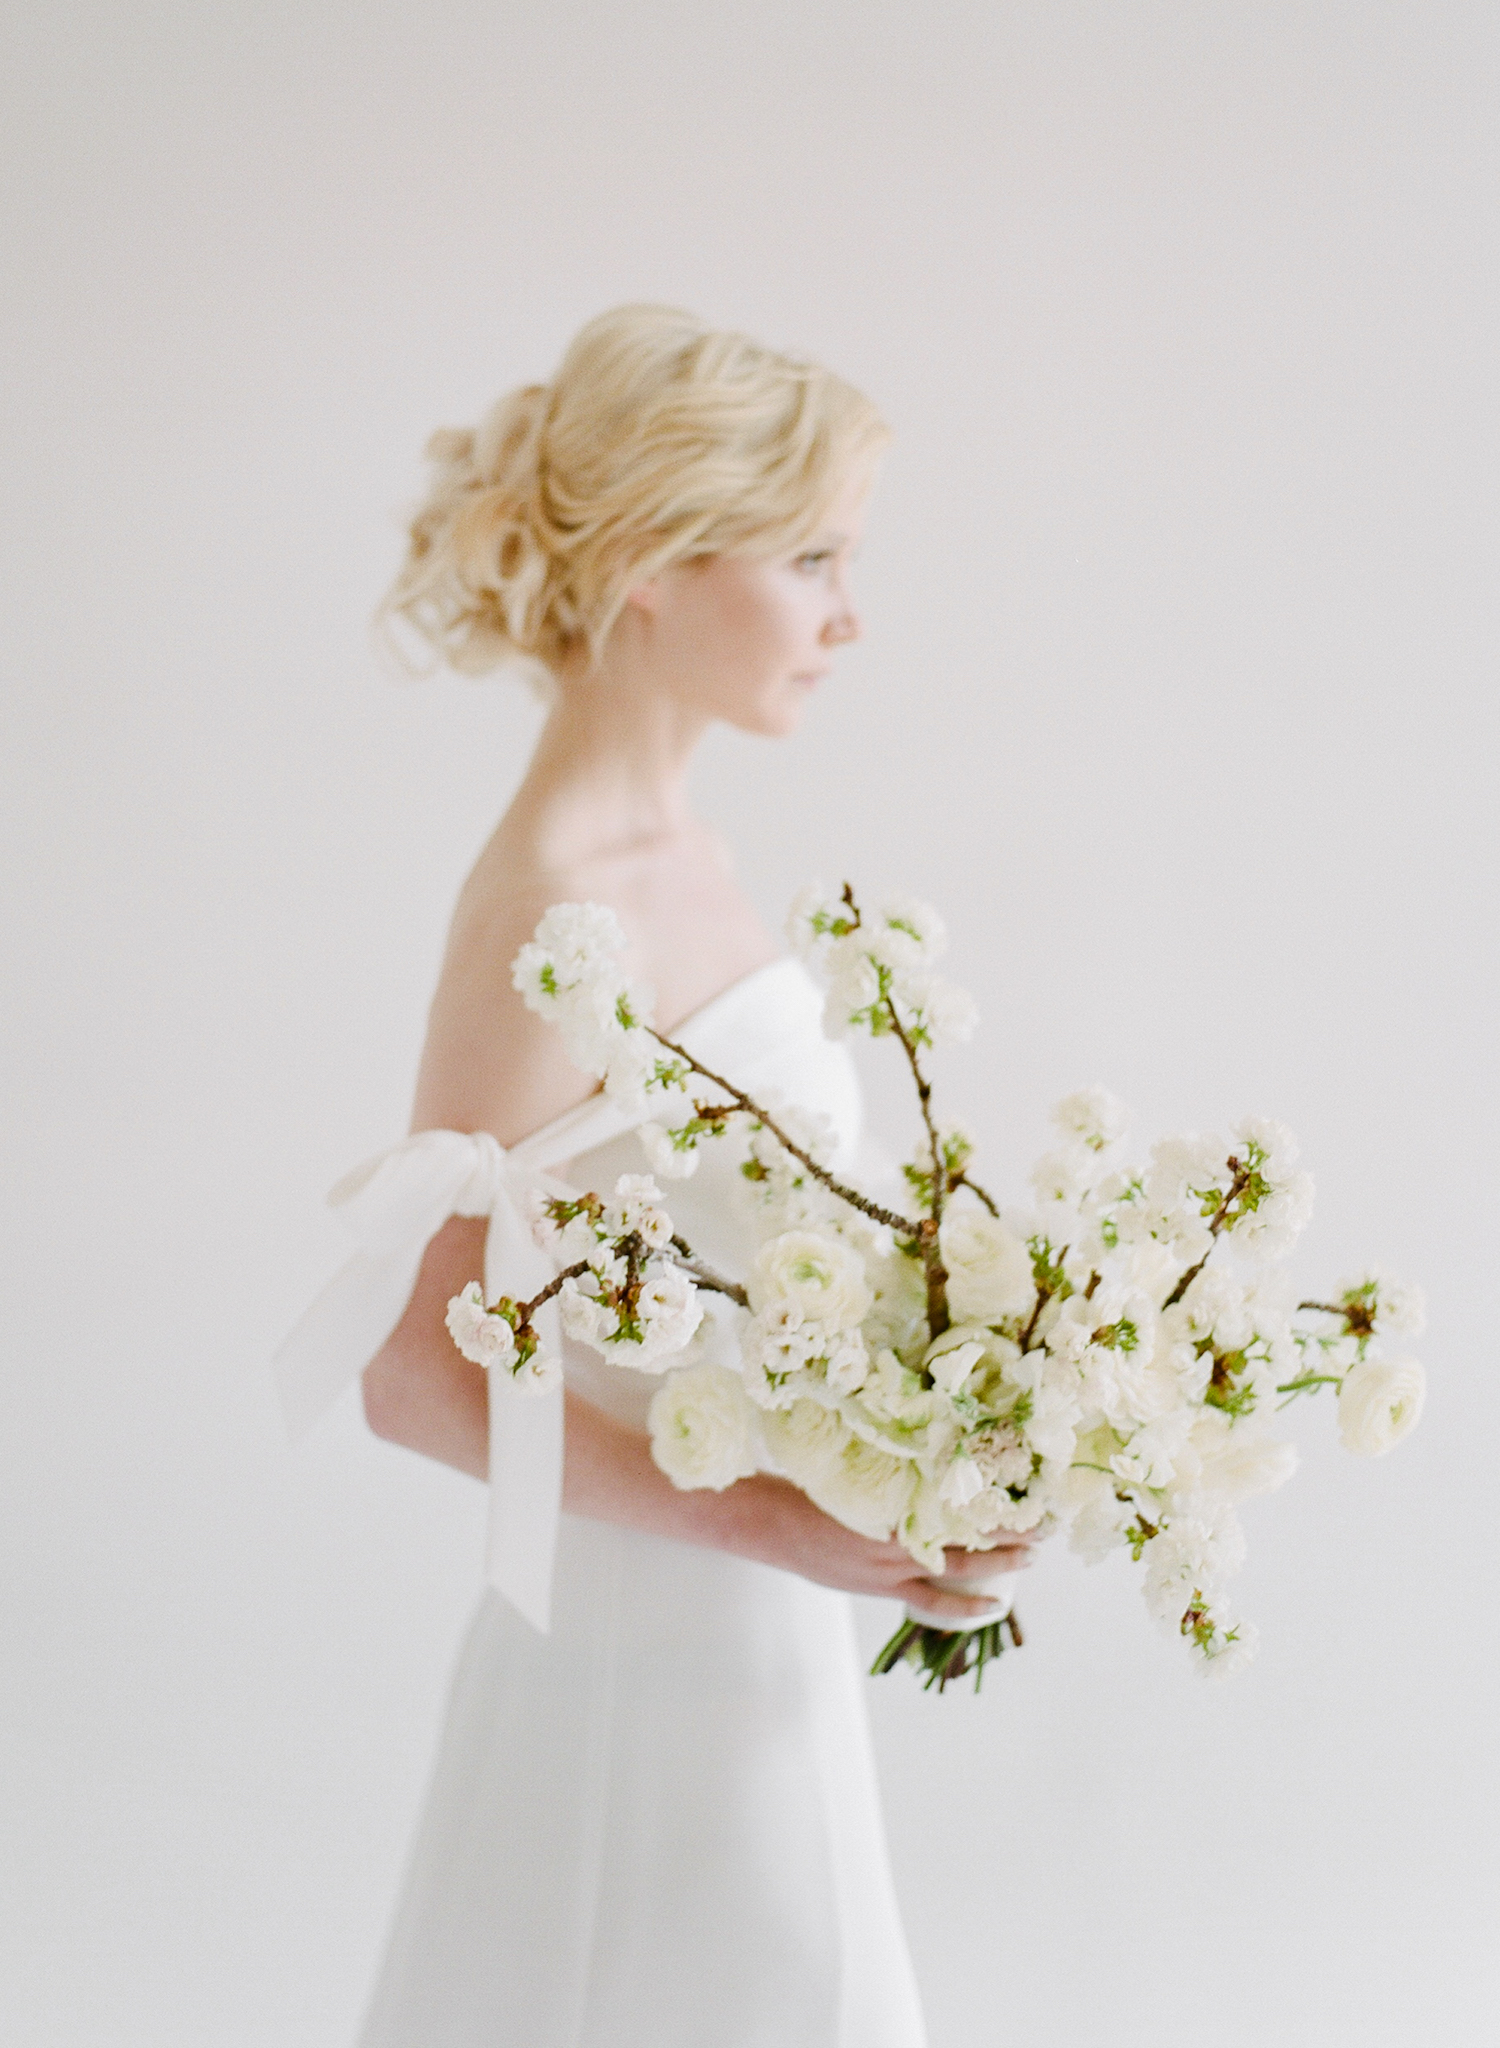 Wild Bloom Floral -Rebecca Yale Photography - Simply by Tamra Nicole - The KNOT - Editorial - Defining Details - White Wedding 24.jpeg